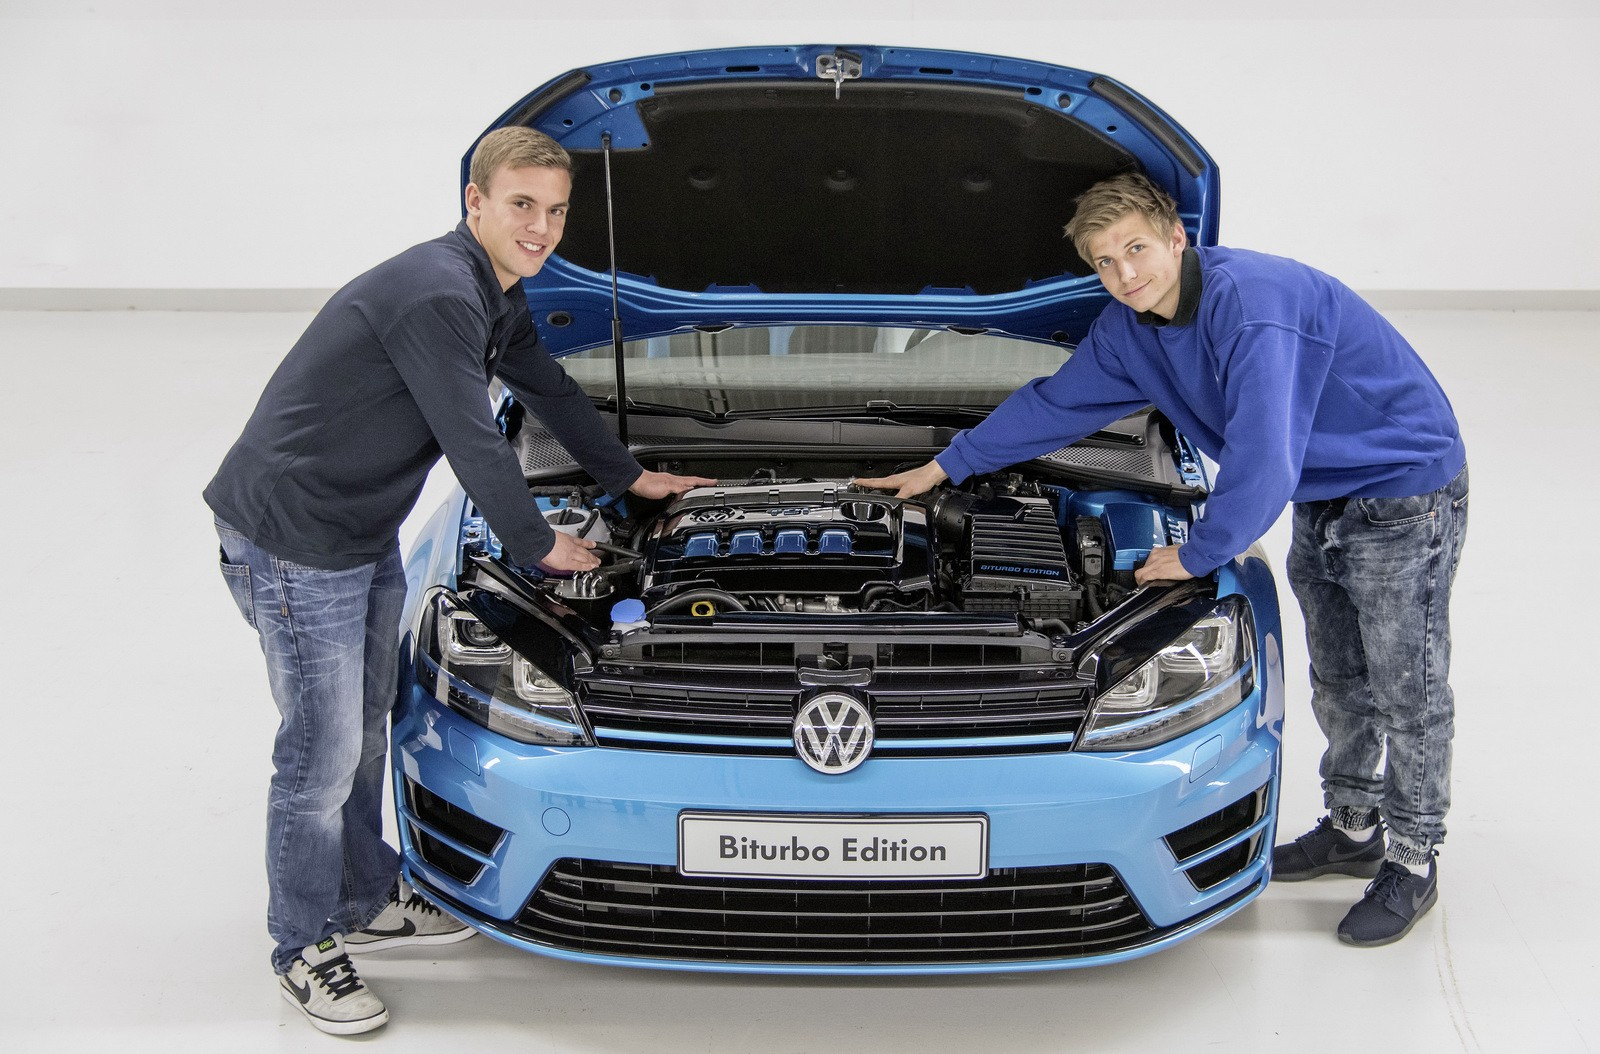 Vw Golf Variant Biturbo Is A Tdi Wet Dream At Worthersee